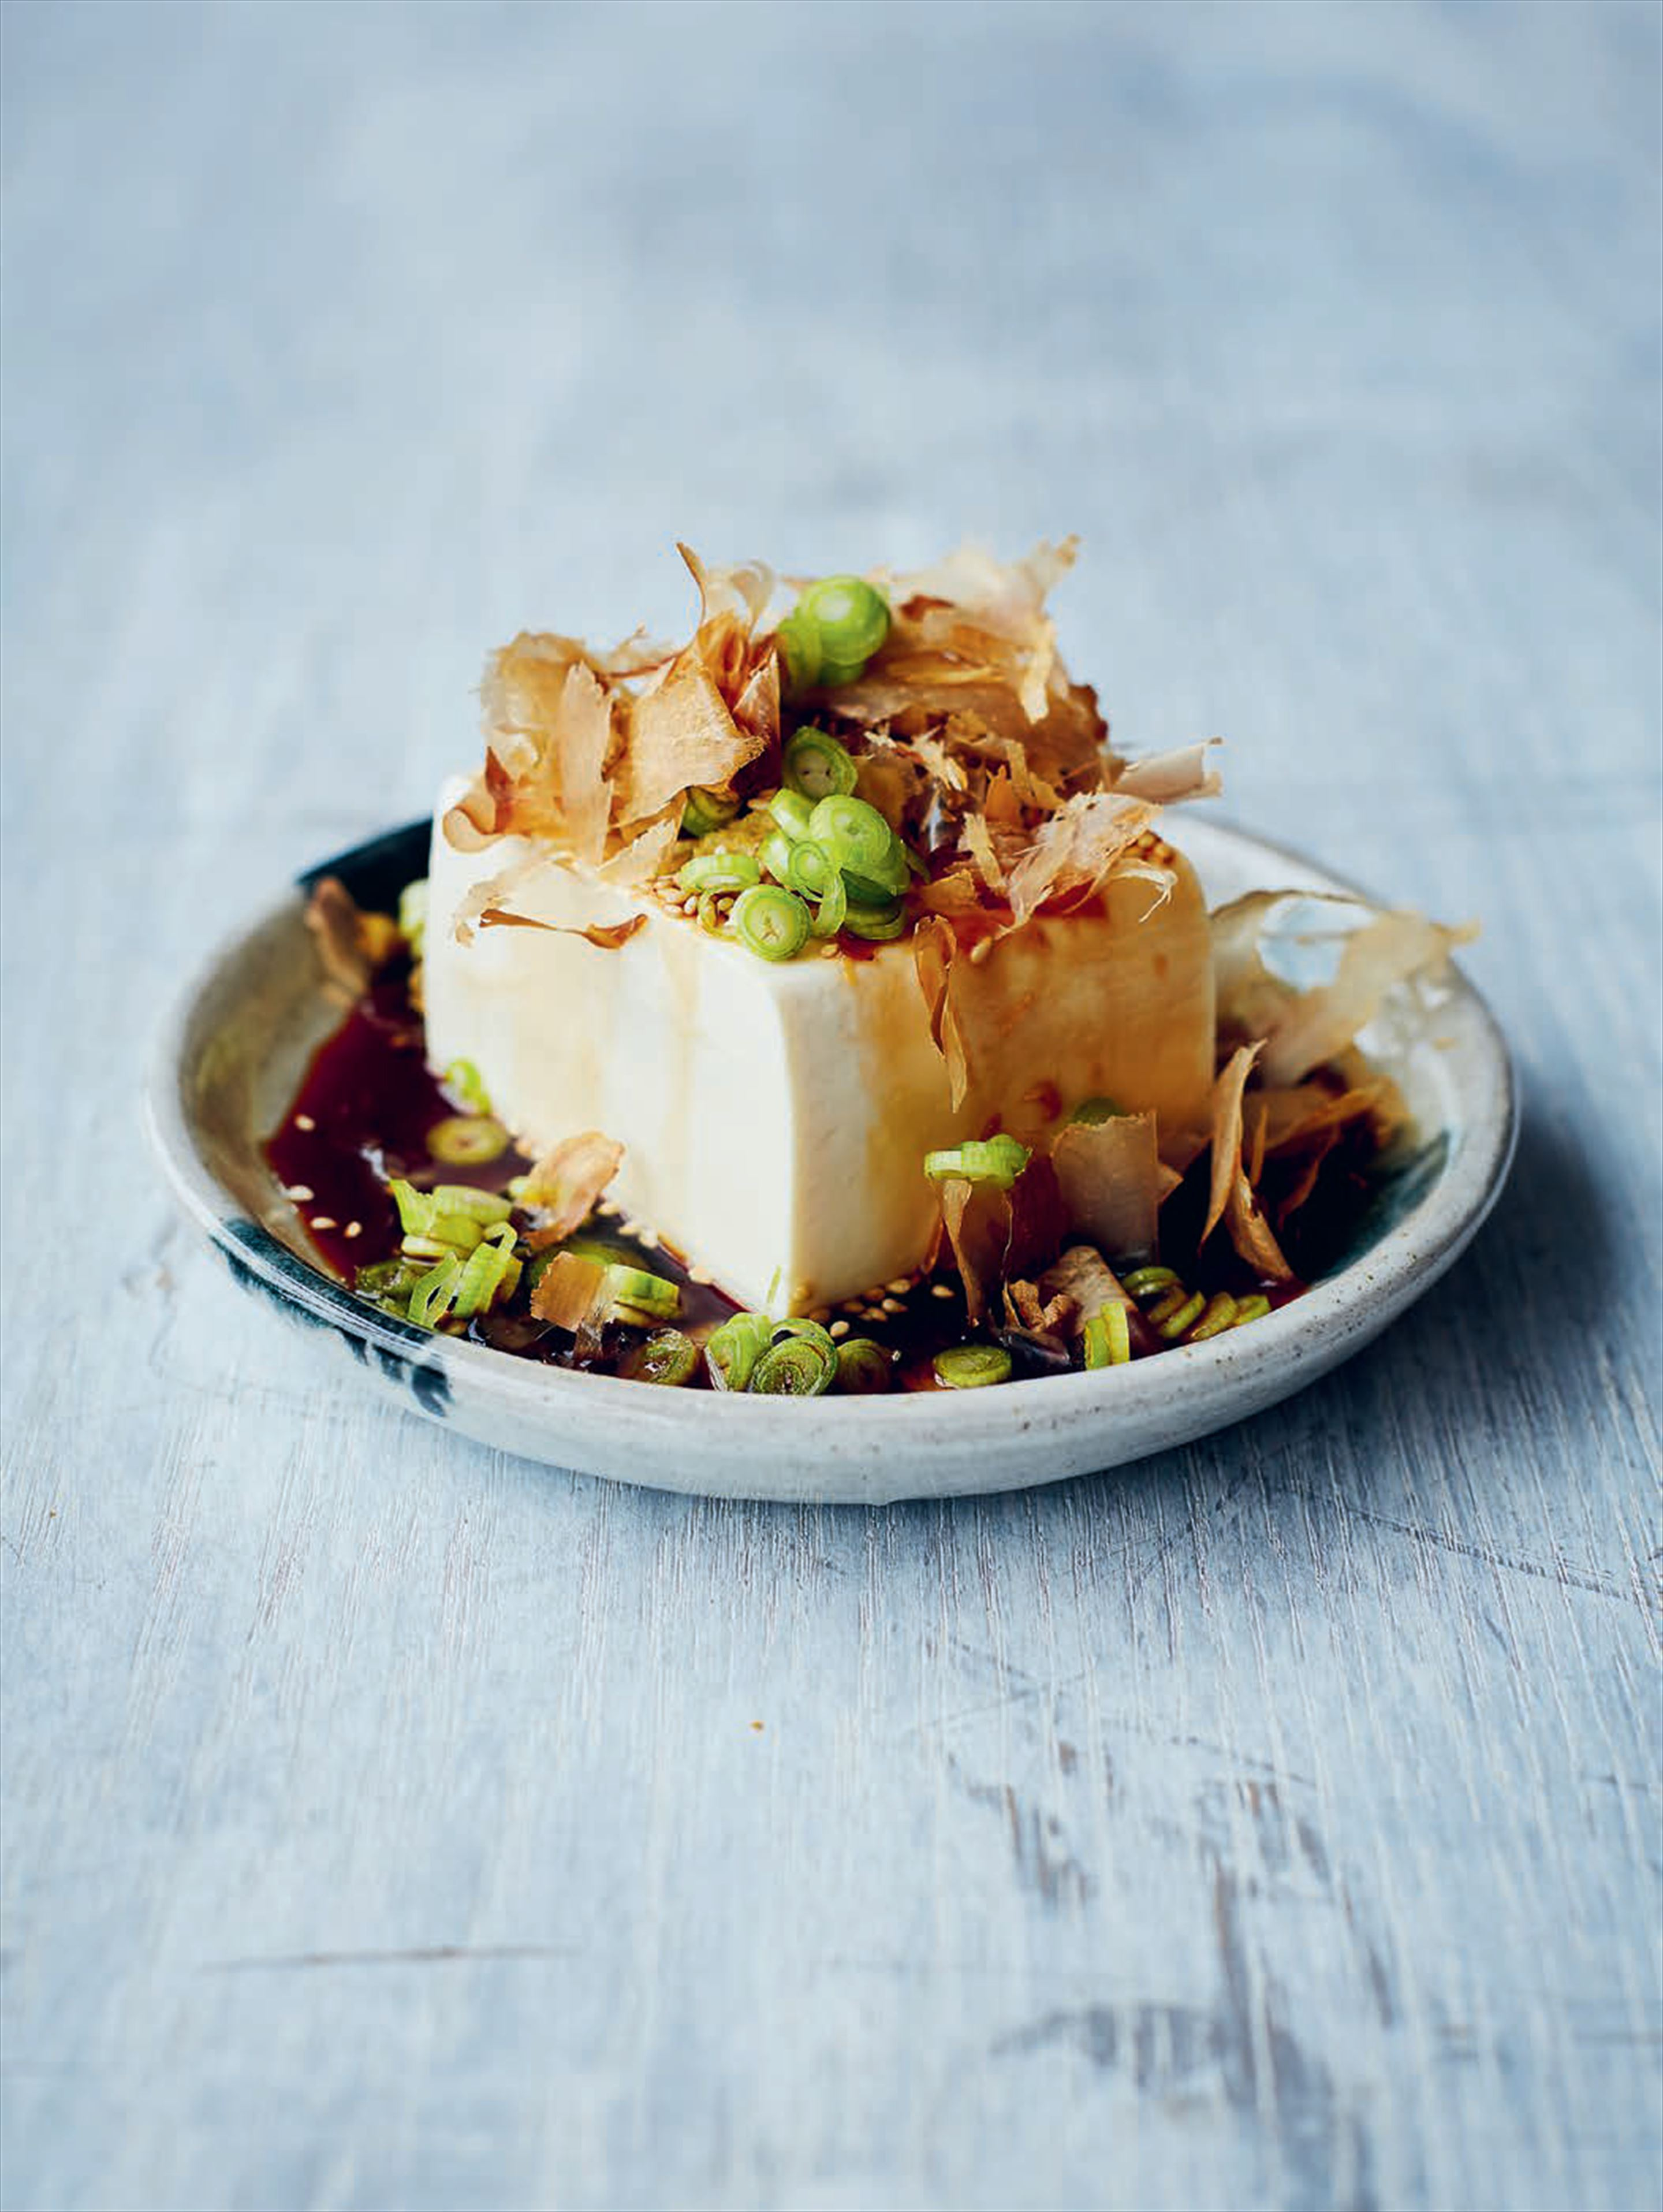 Chilled tofu with soy sauce, ginger and katsuobushi